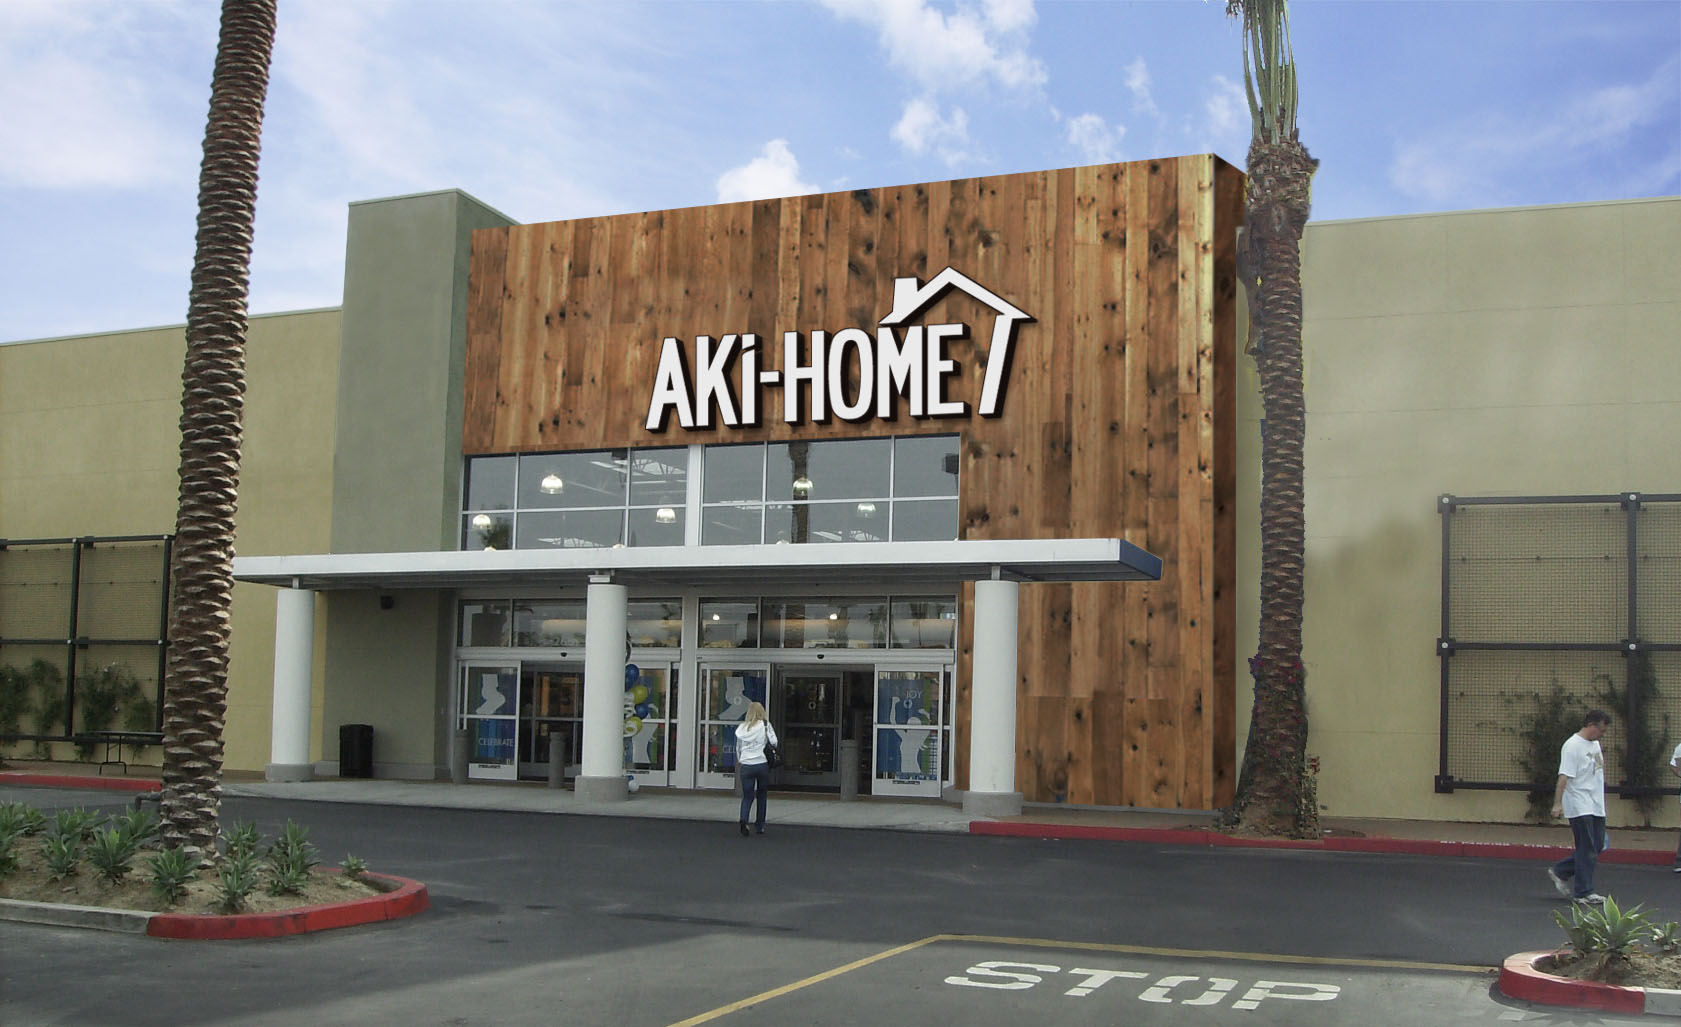 Nitori Expands Furniture Chain from Japan to US with Aki-Home